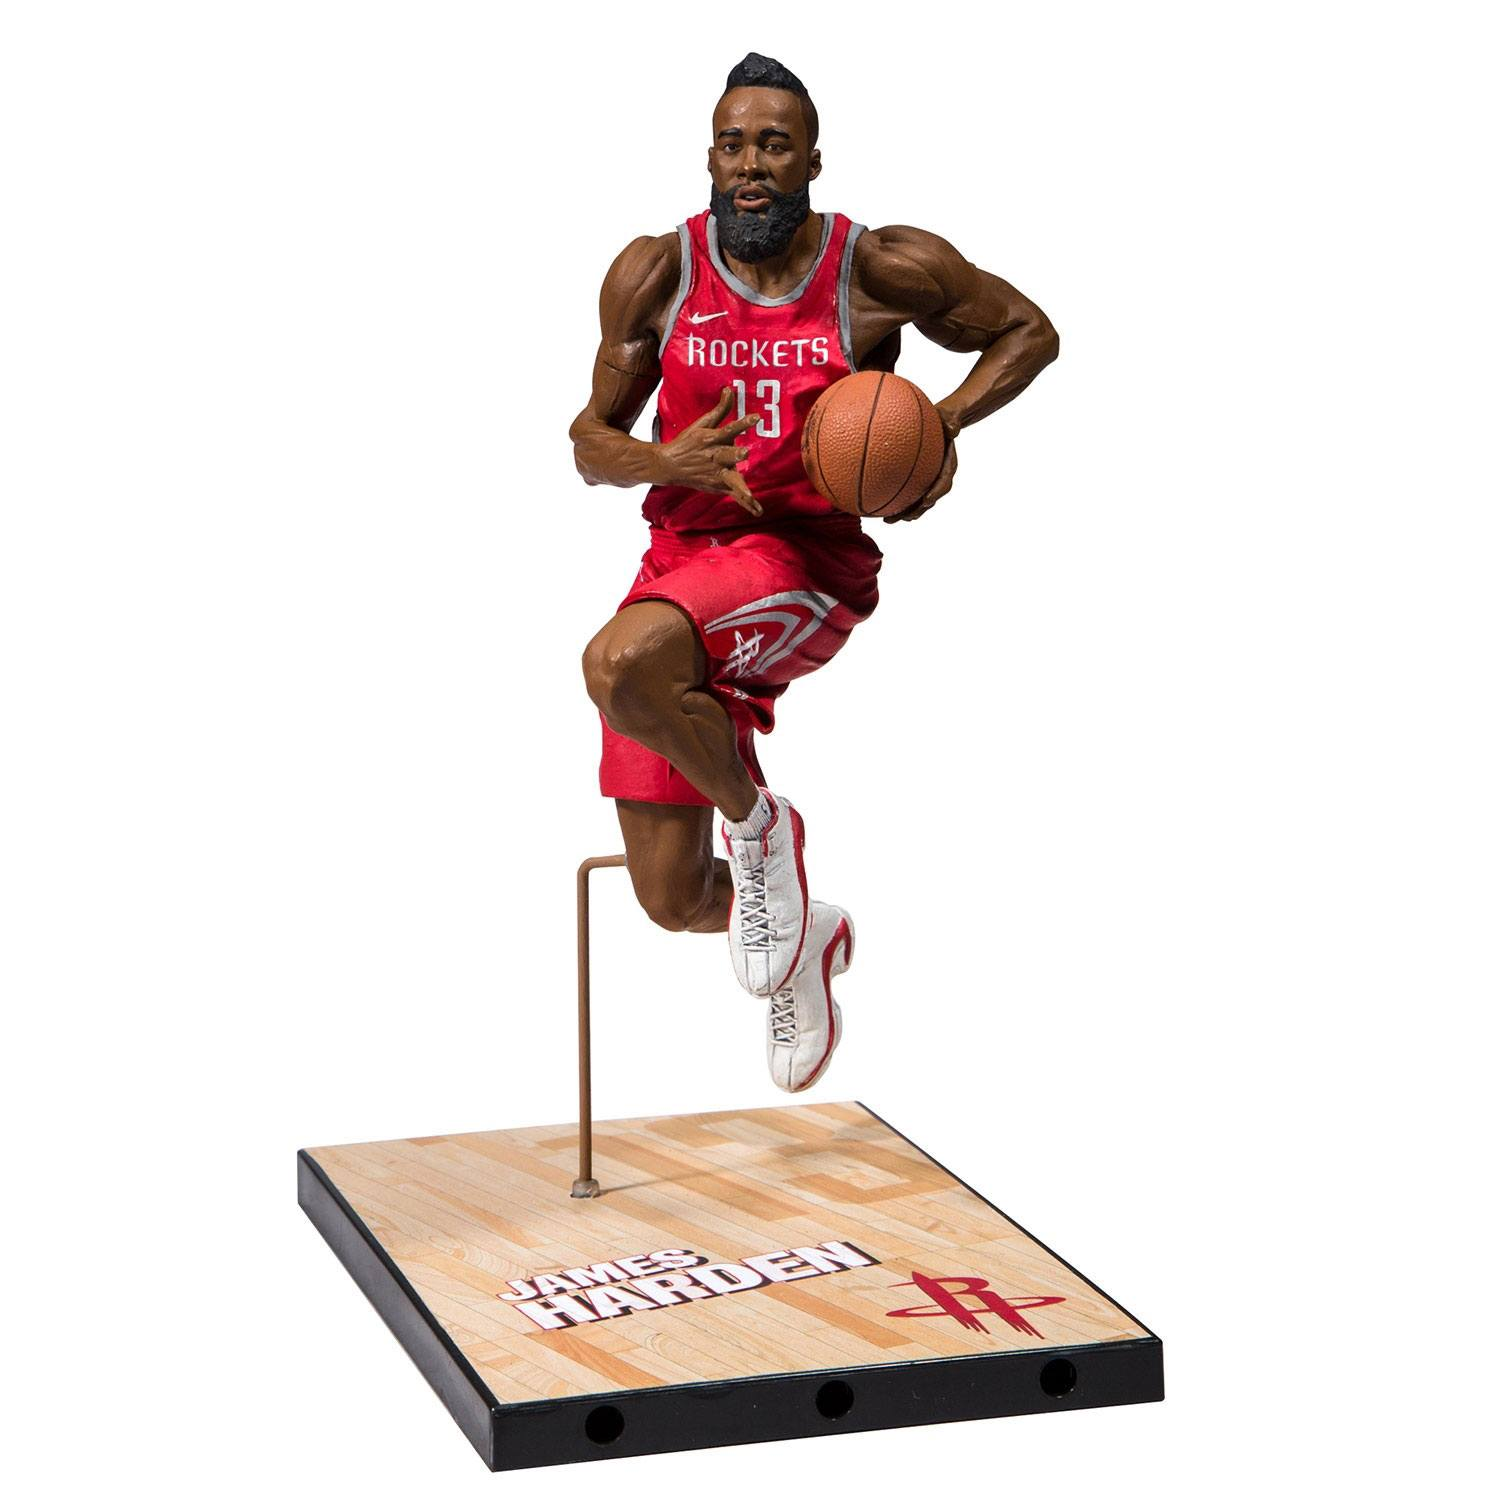 Nba2k19 James Harden: Www.toystnt.com